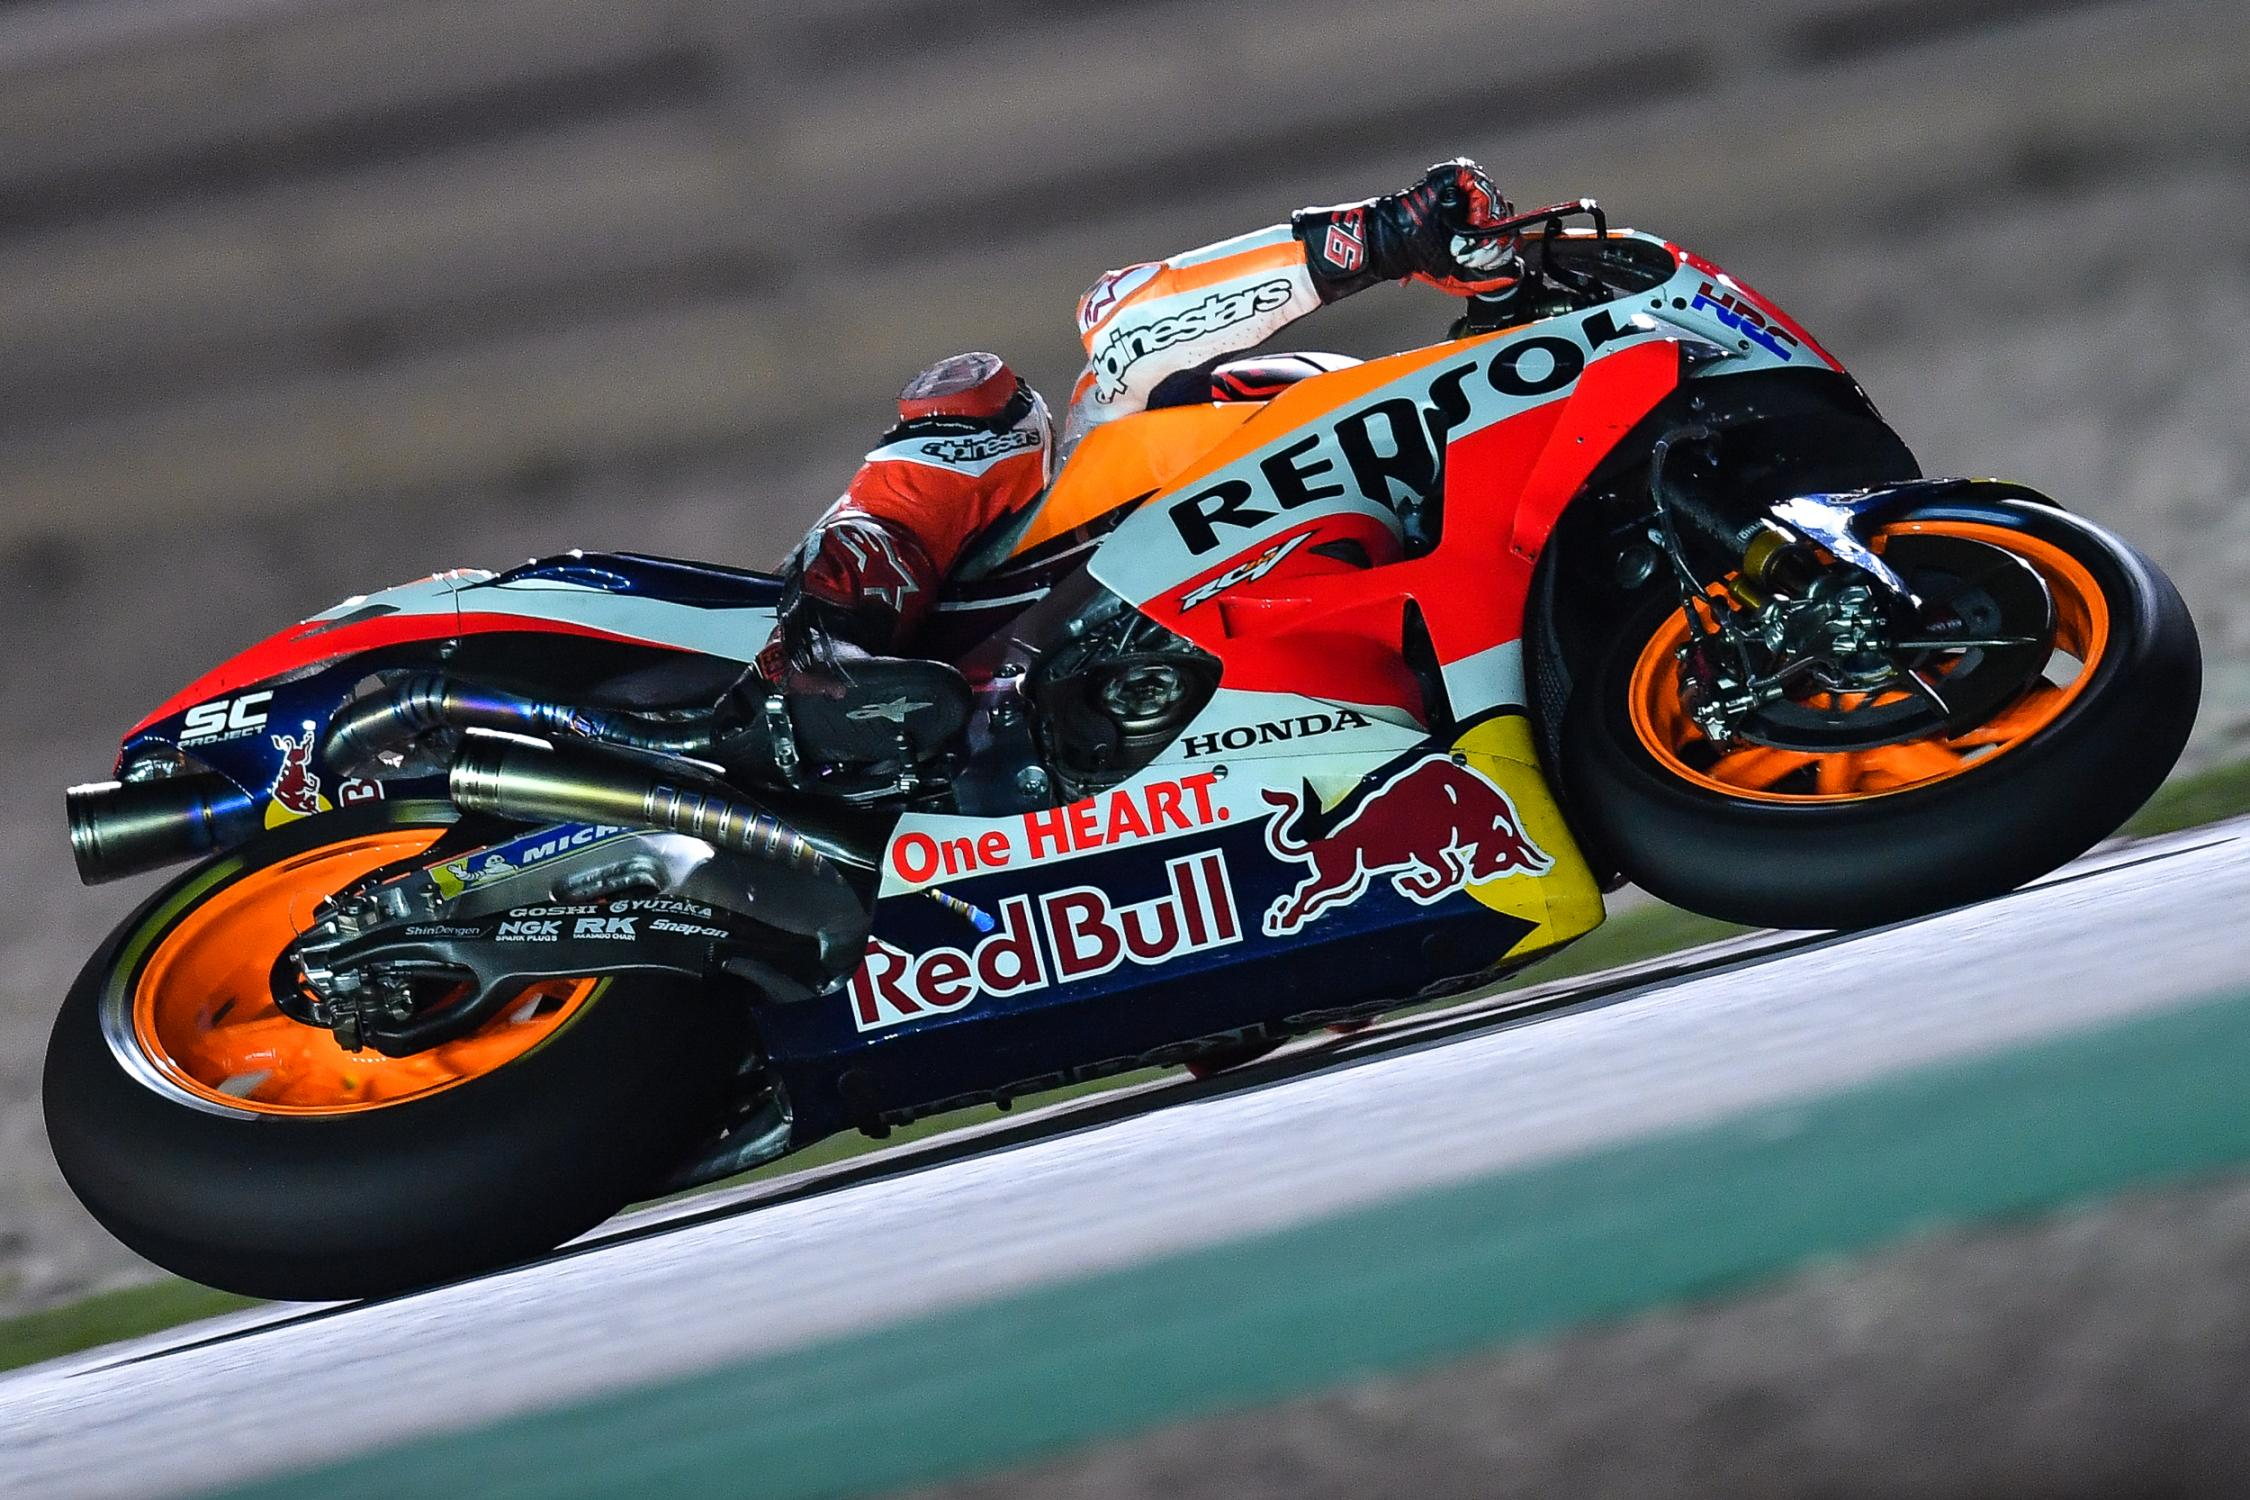 93-marc-marquez-esplg5_2765.gallery_full_top_fullscreen.jpg